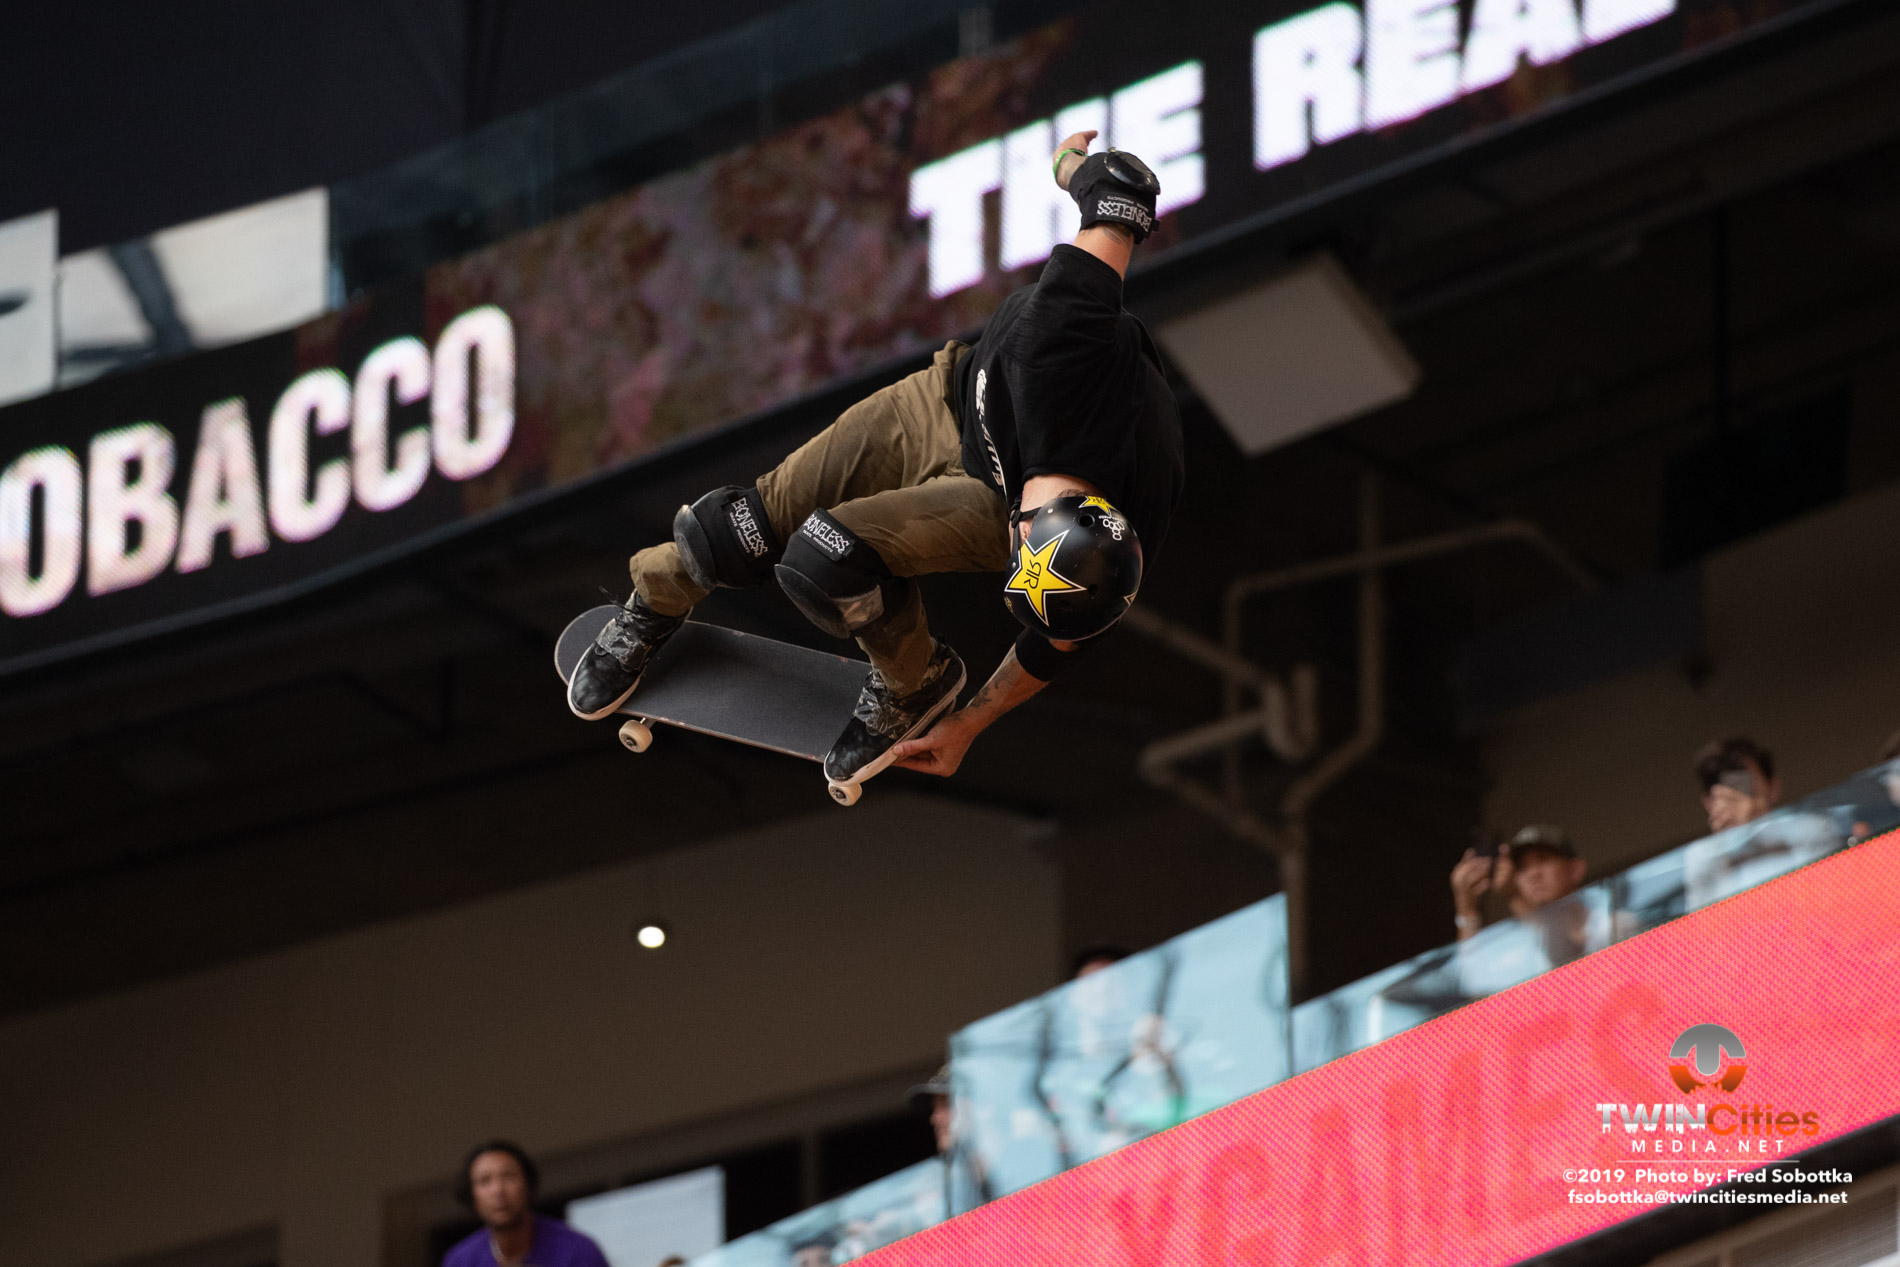 The-Real-Cost-Skateboard-Big-Air-13